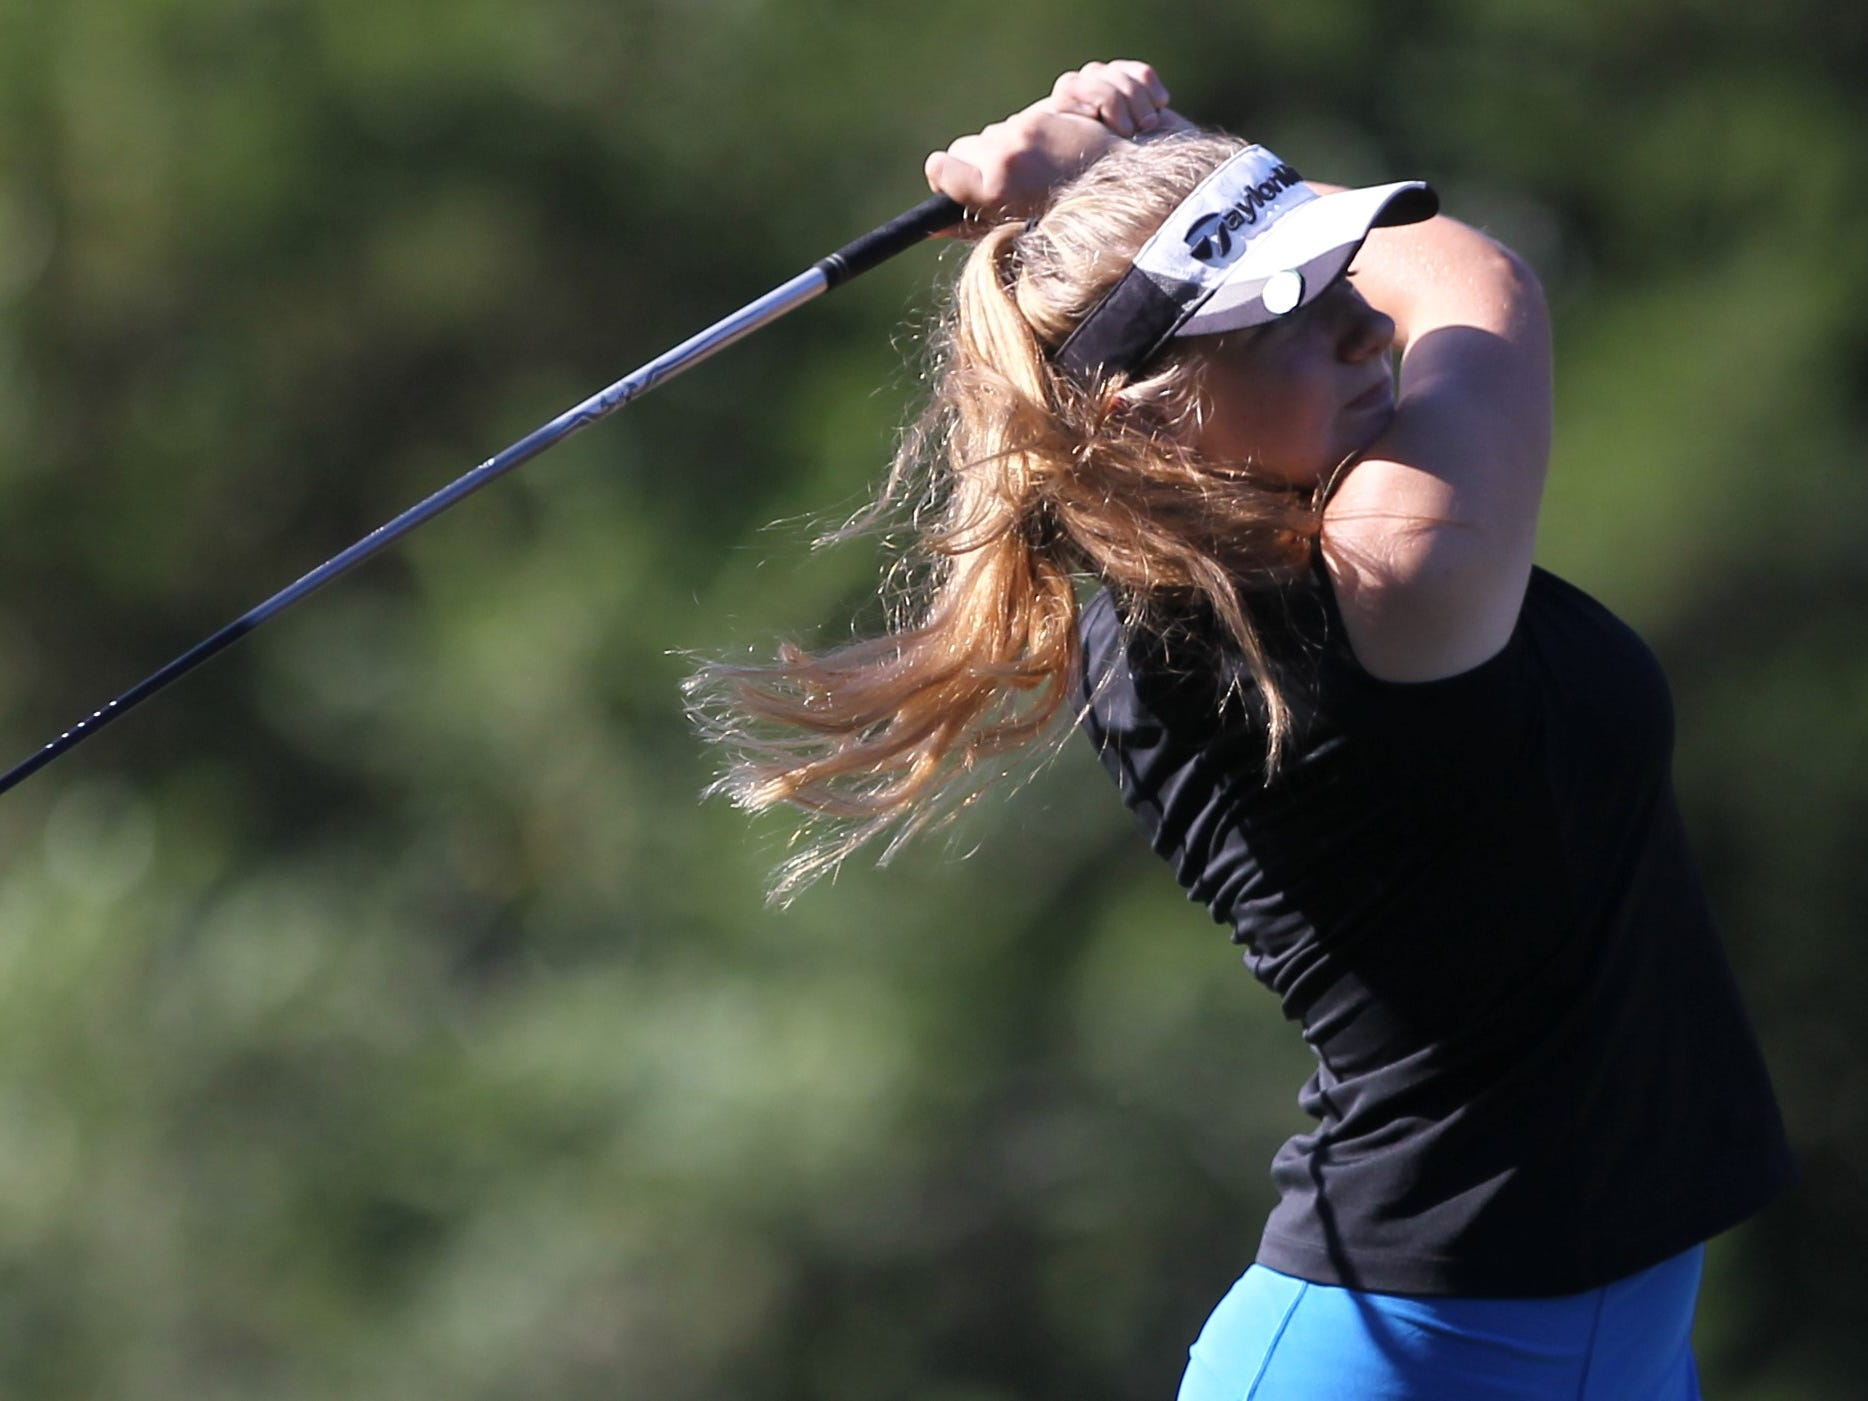 Franklin County senior Melanie Collins plays in the girls golf Panhandle Invitational at Killearn Country Club, Oct. 4, 2018.